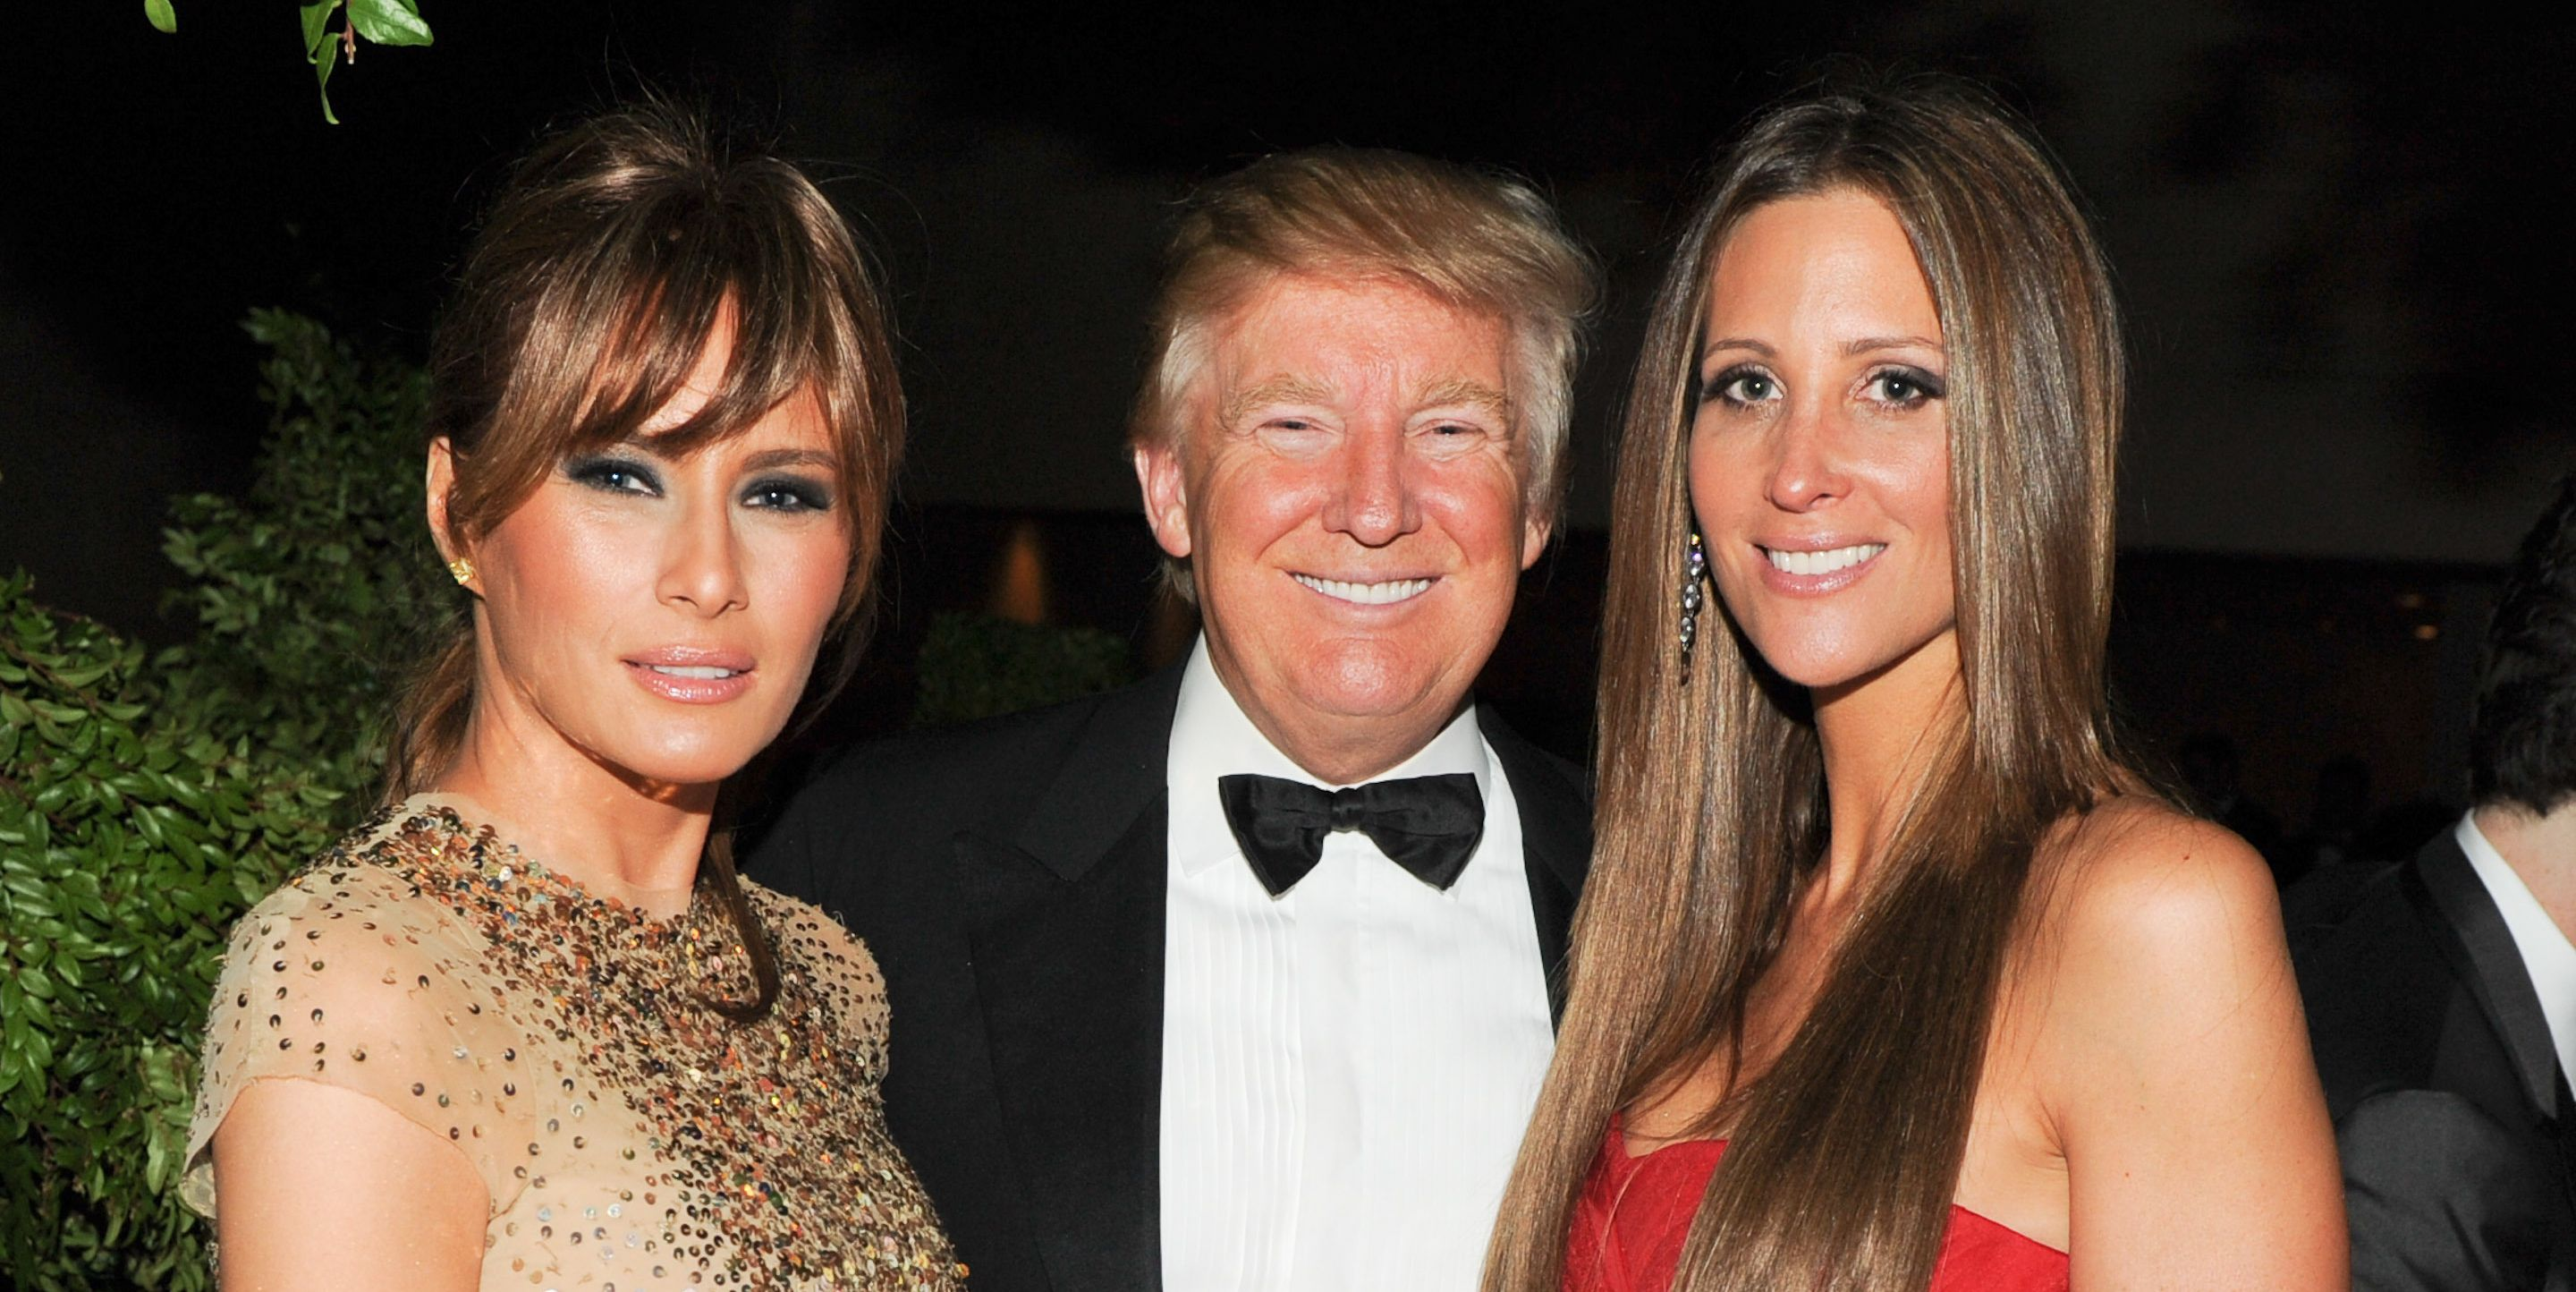 Who is Stephanie Winston Wolkoff? - The Rise and Fall of Melania Trump's Advisor